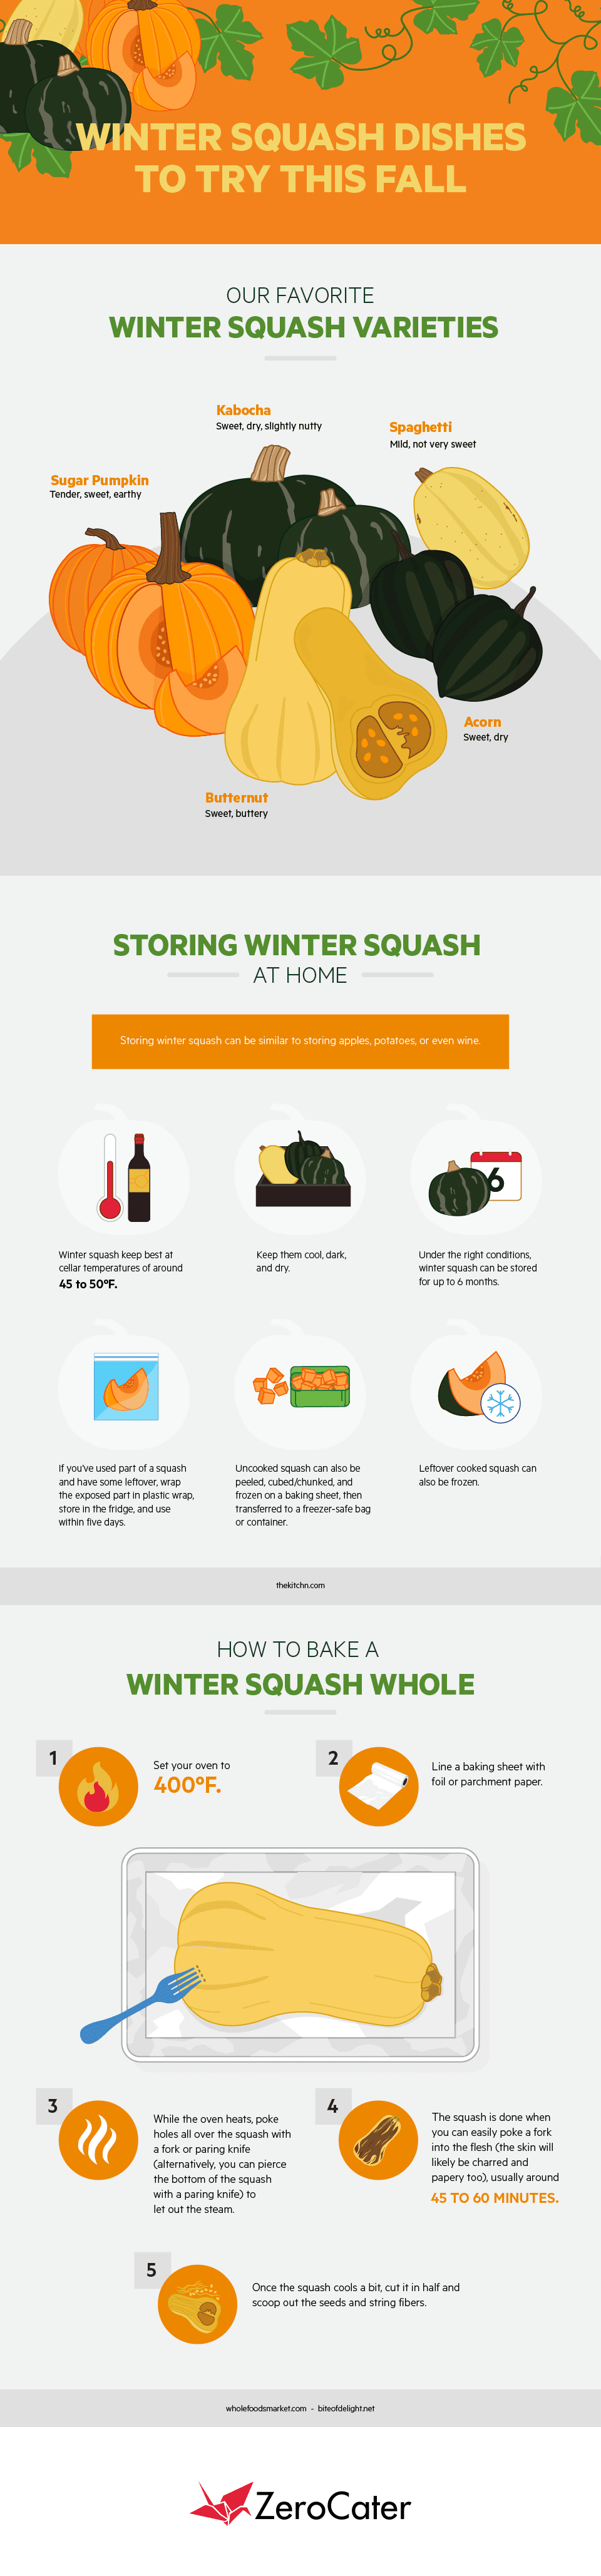 Winter Squash Dishes to Try This Fall #infographic